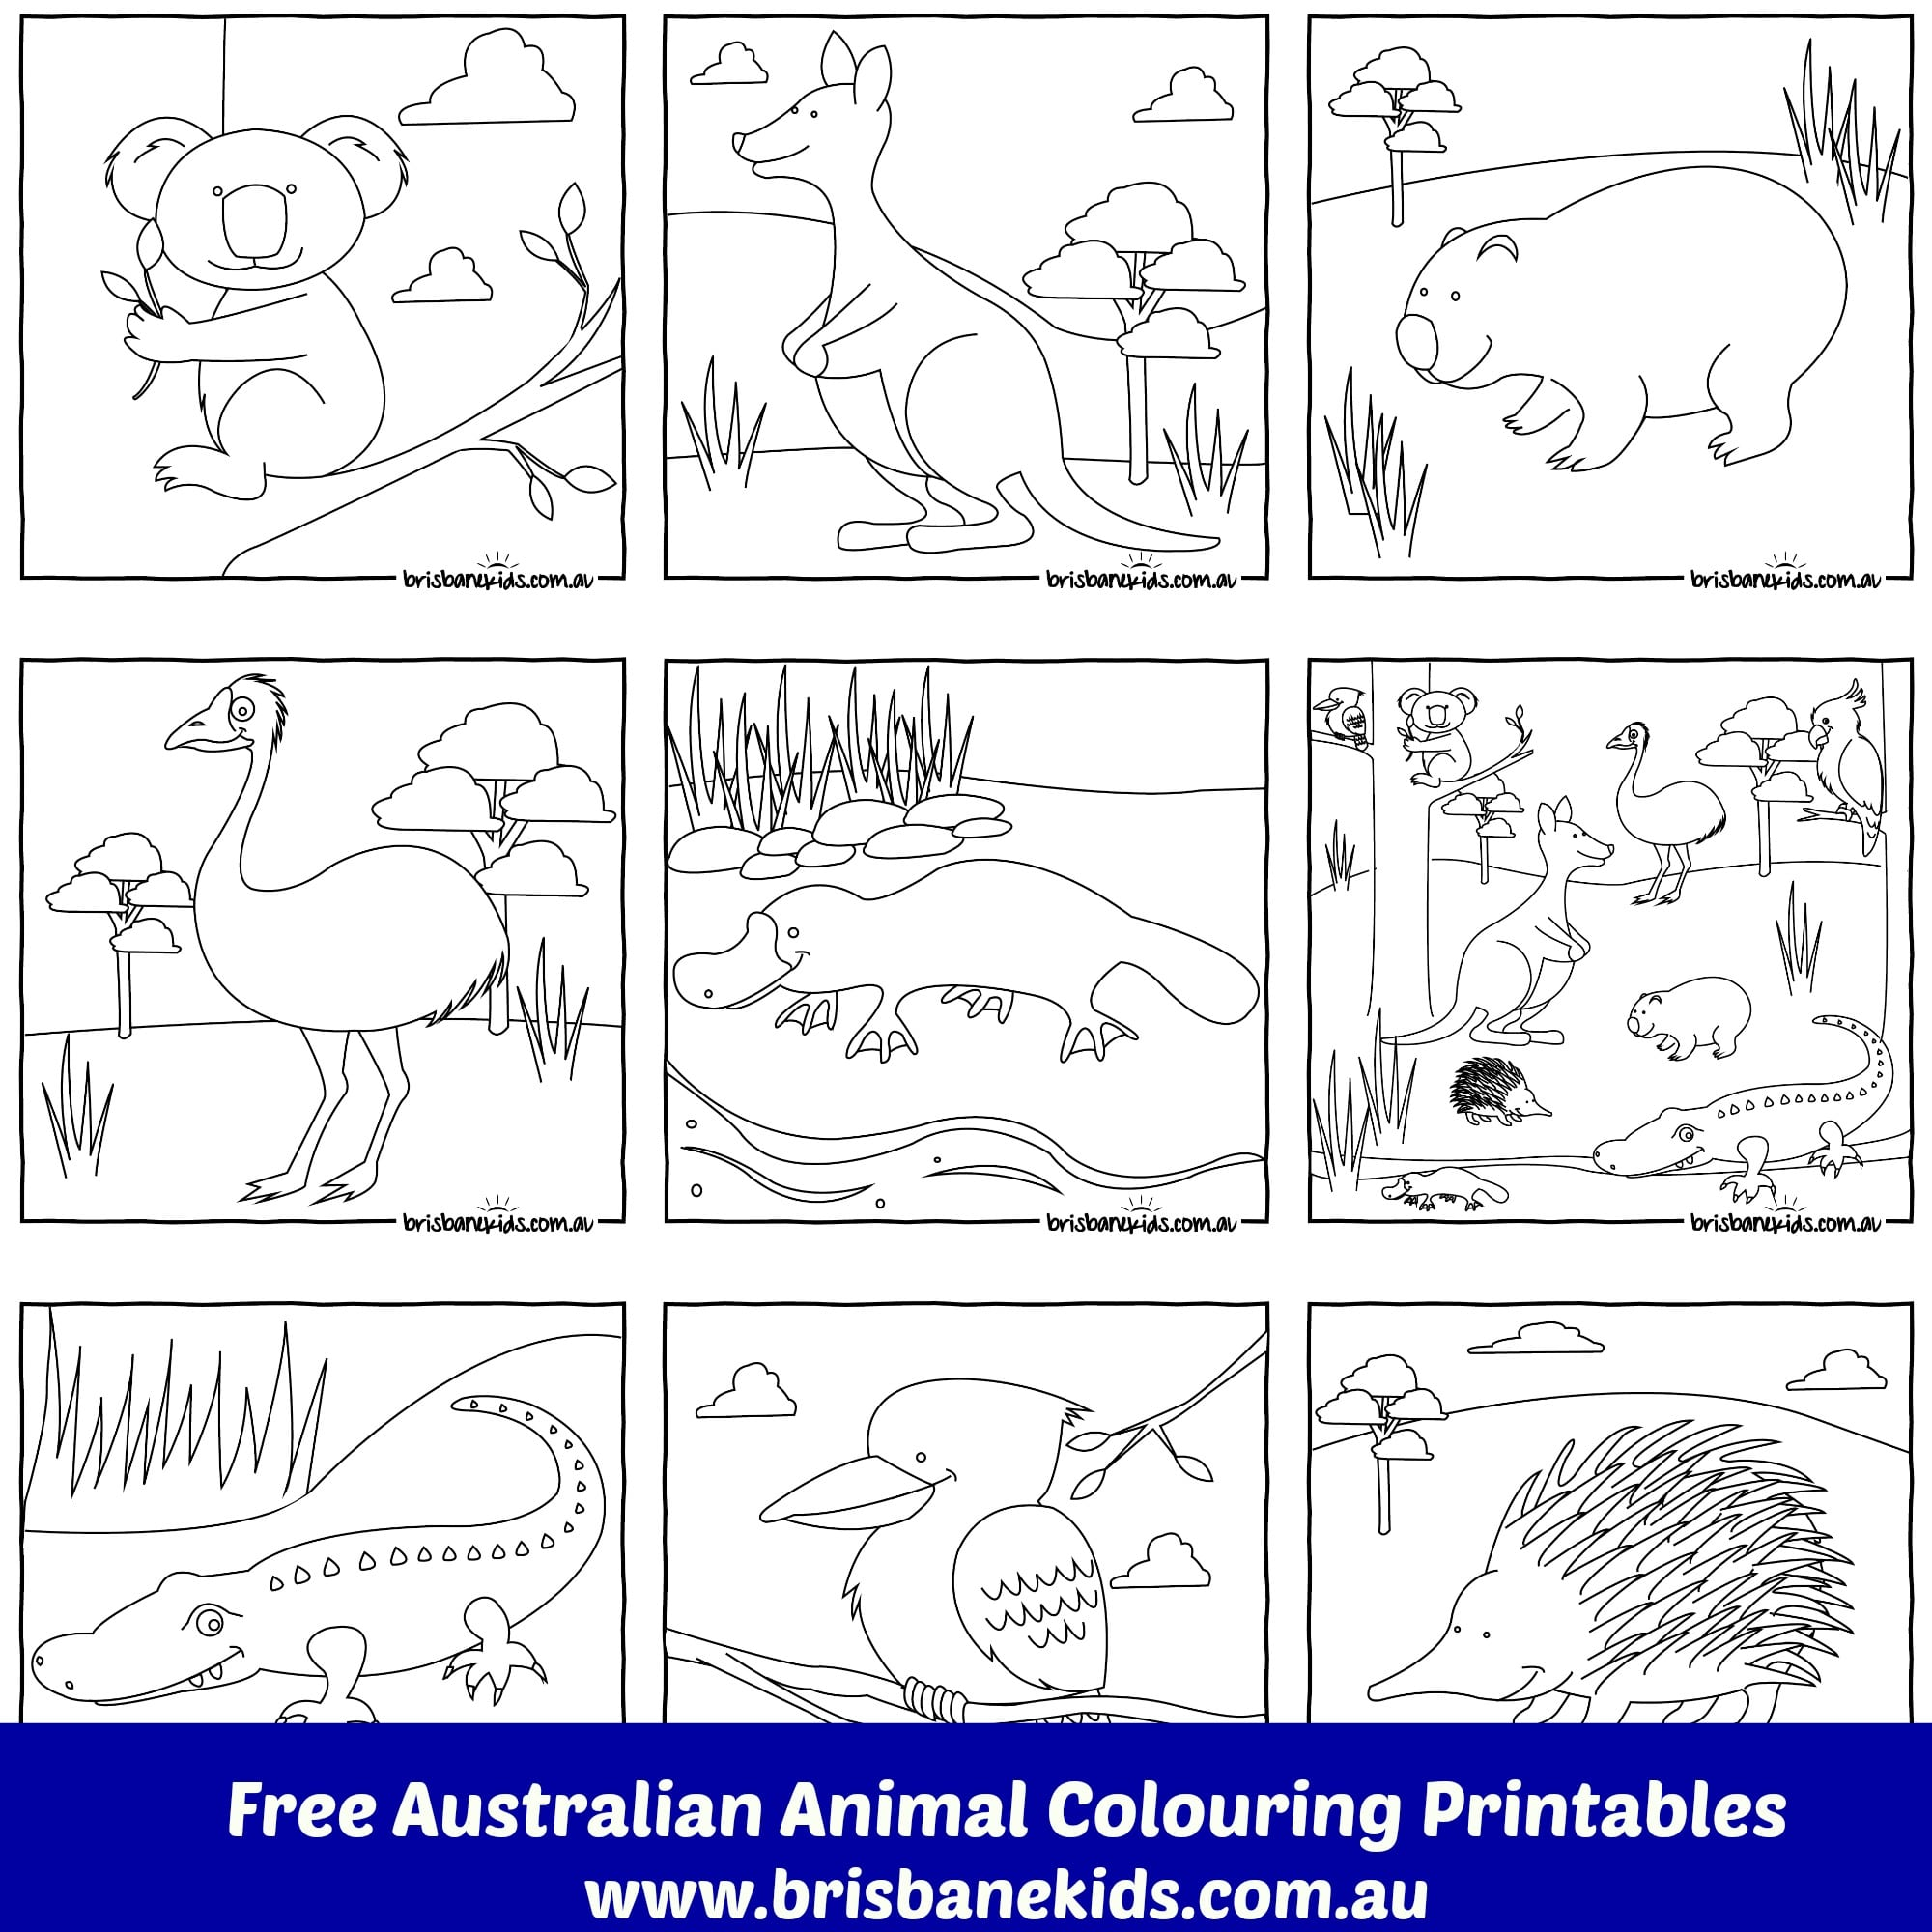 Collouring: Australian Animals Colouring Pages • Brisbane Kids